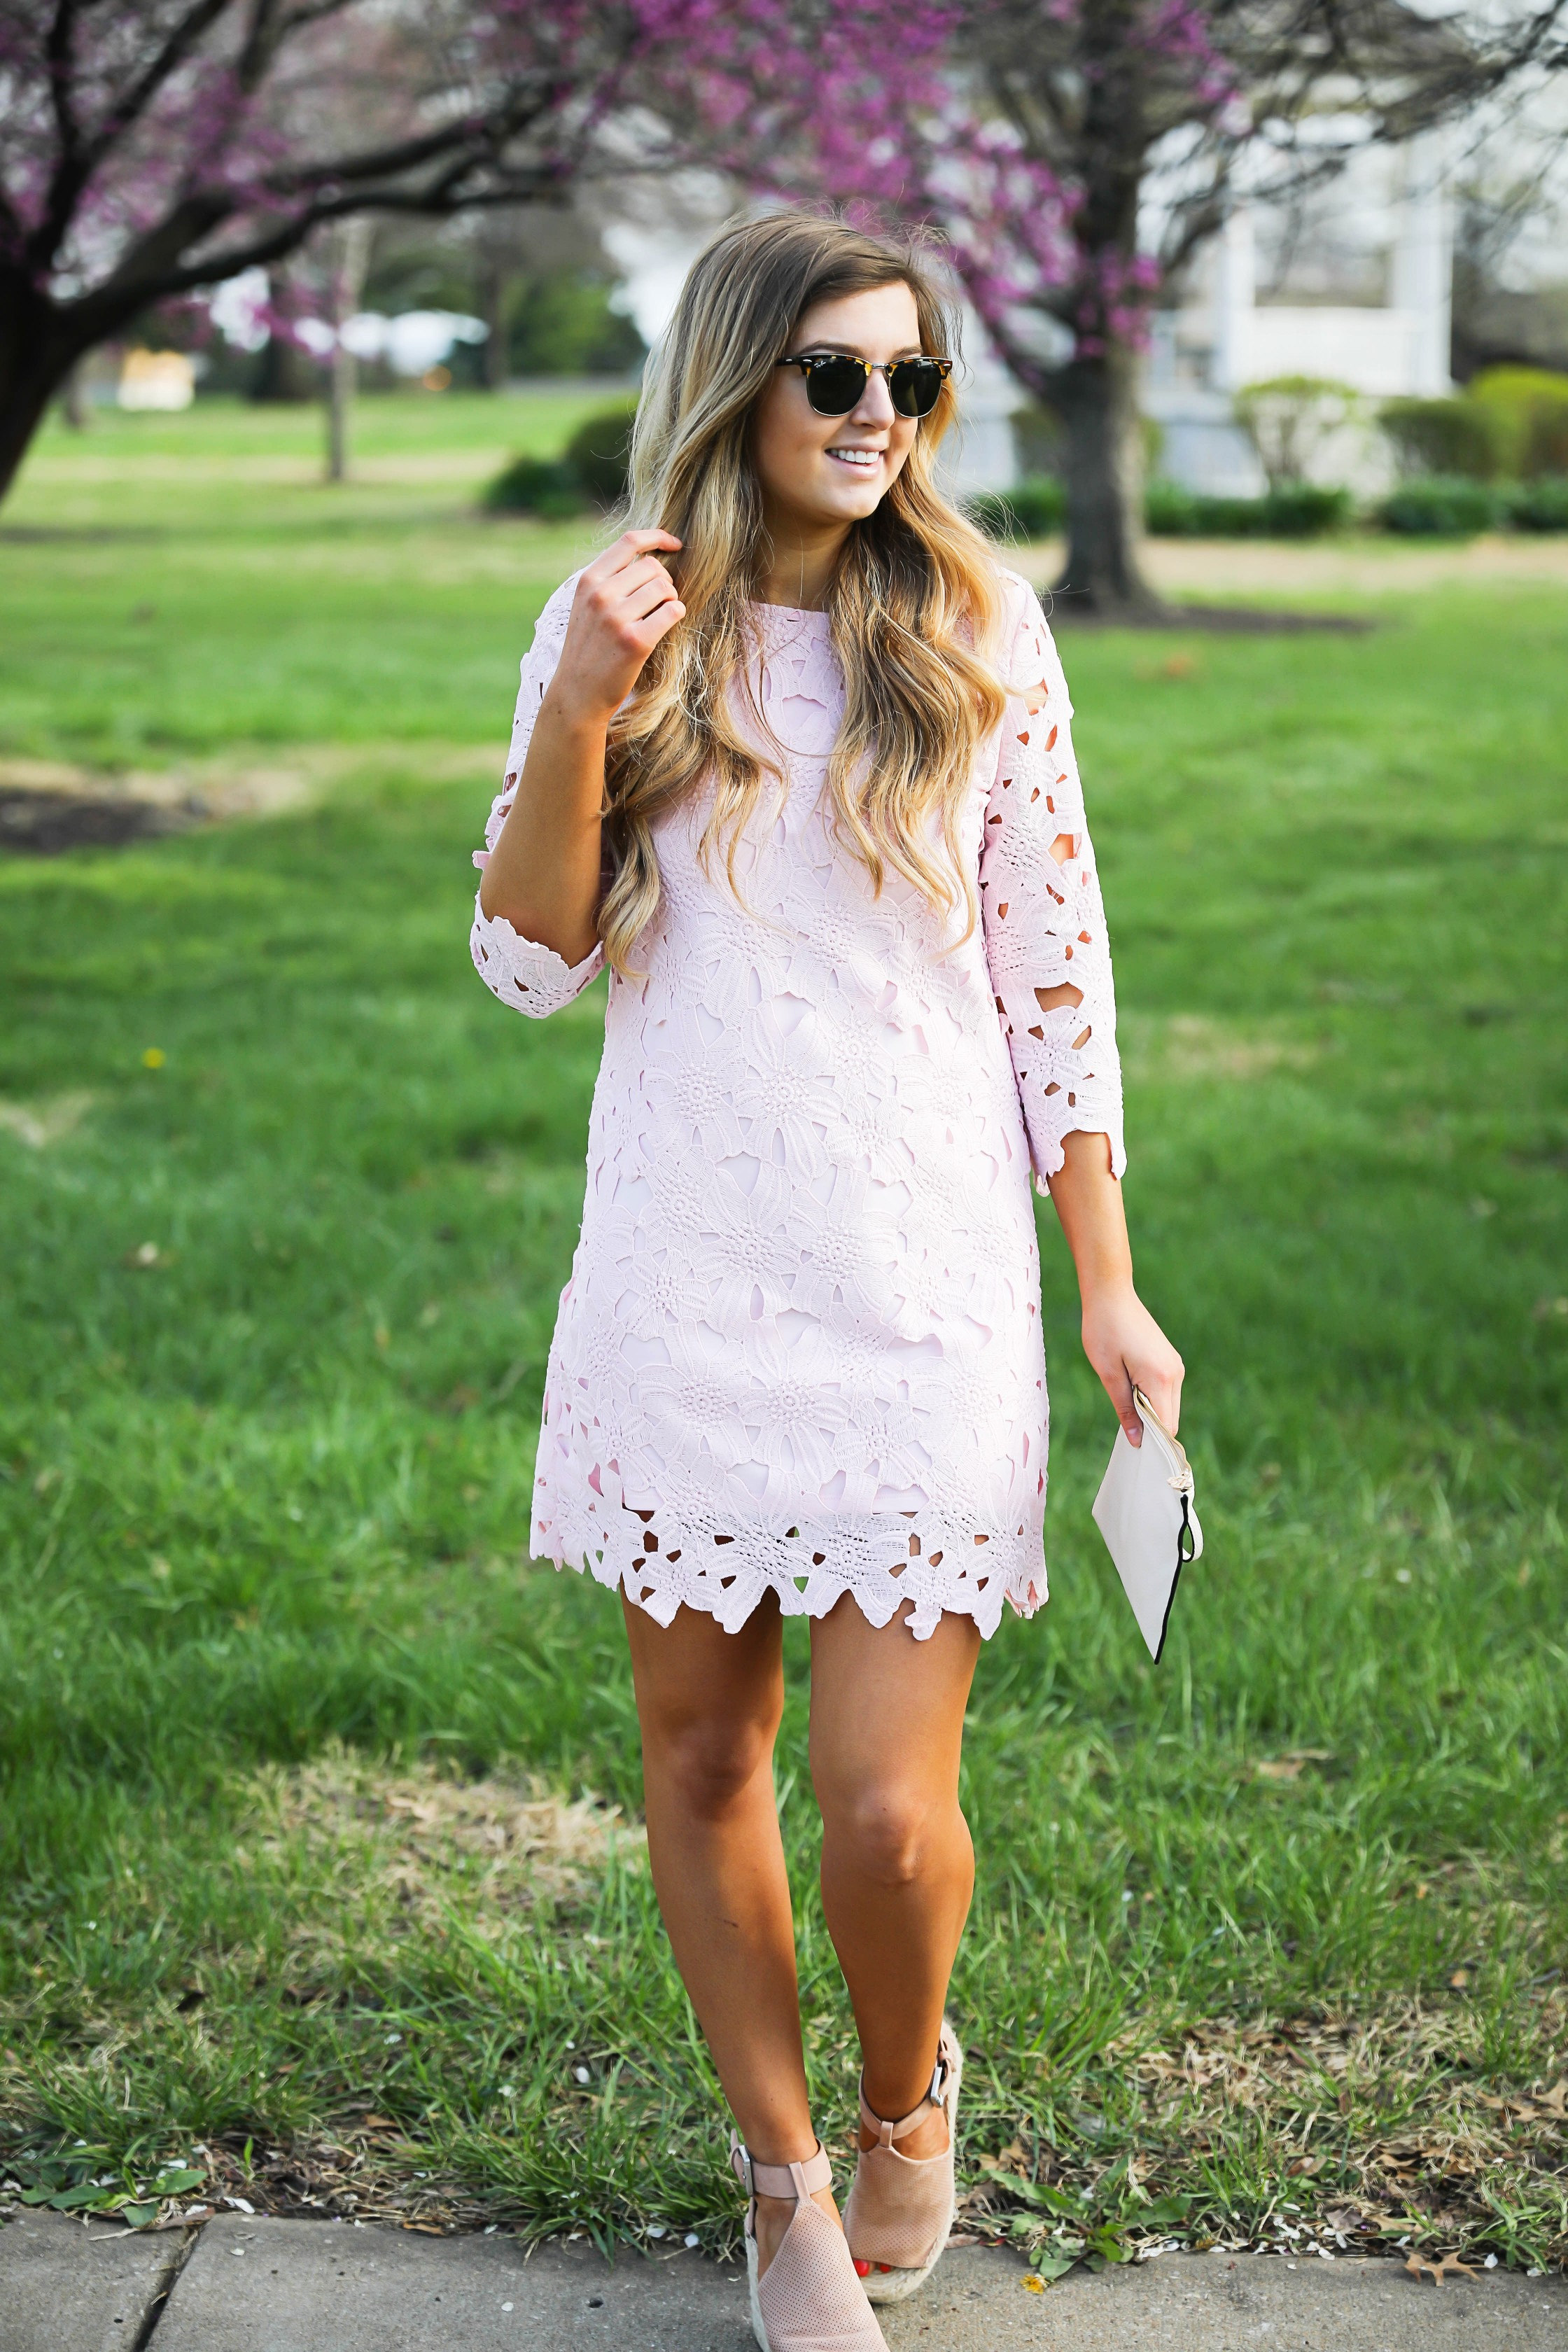 The cutest Easter dress for spring! I love dresses in spring! This light pink lace dress is my favorite dress I own. Find in on the fashion blog Daily Dose of Charm by Lauren Lindmark dailydoseofcharm.com